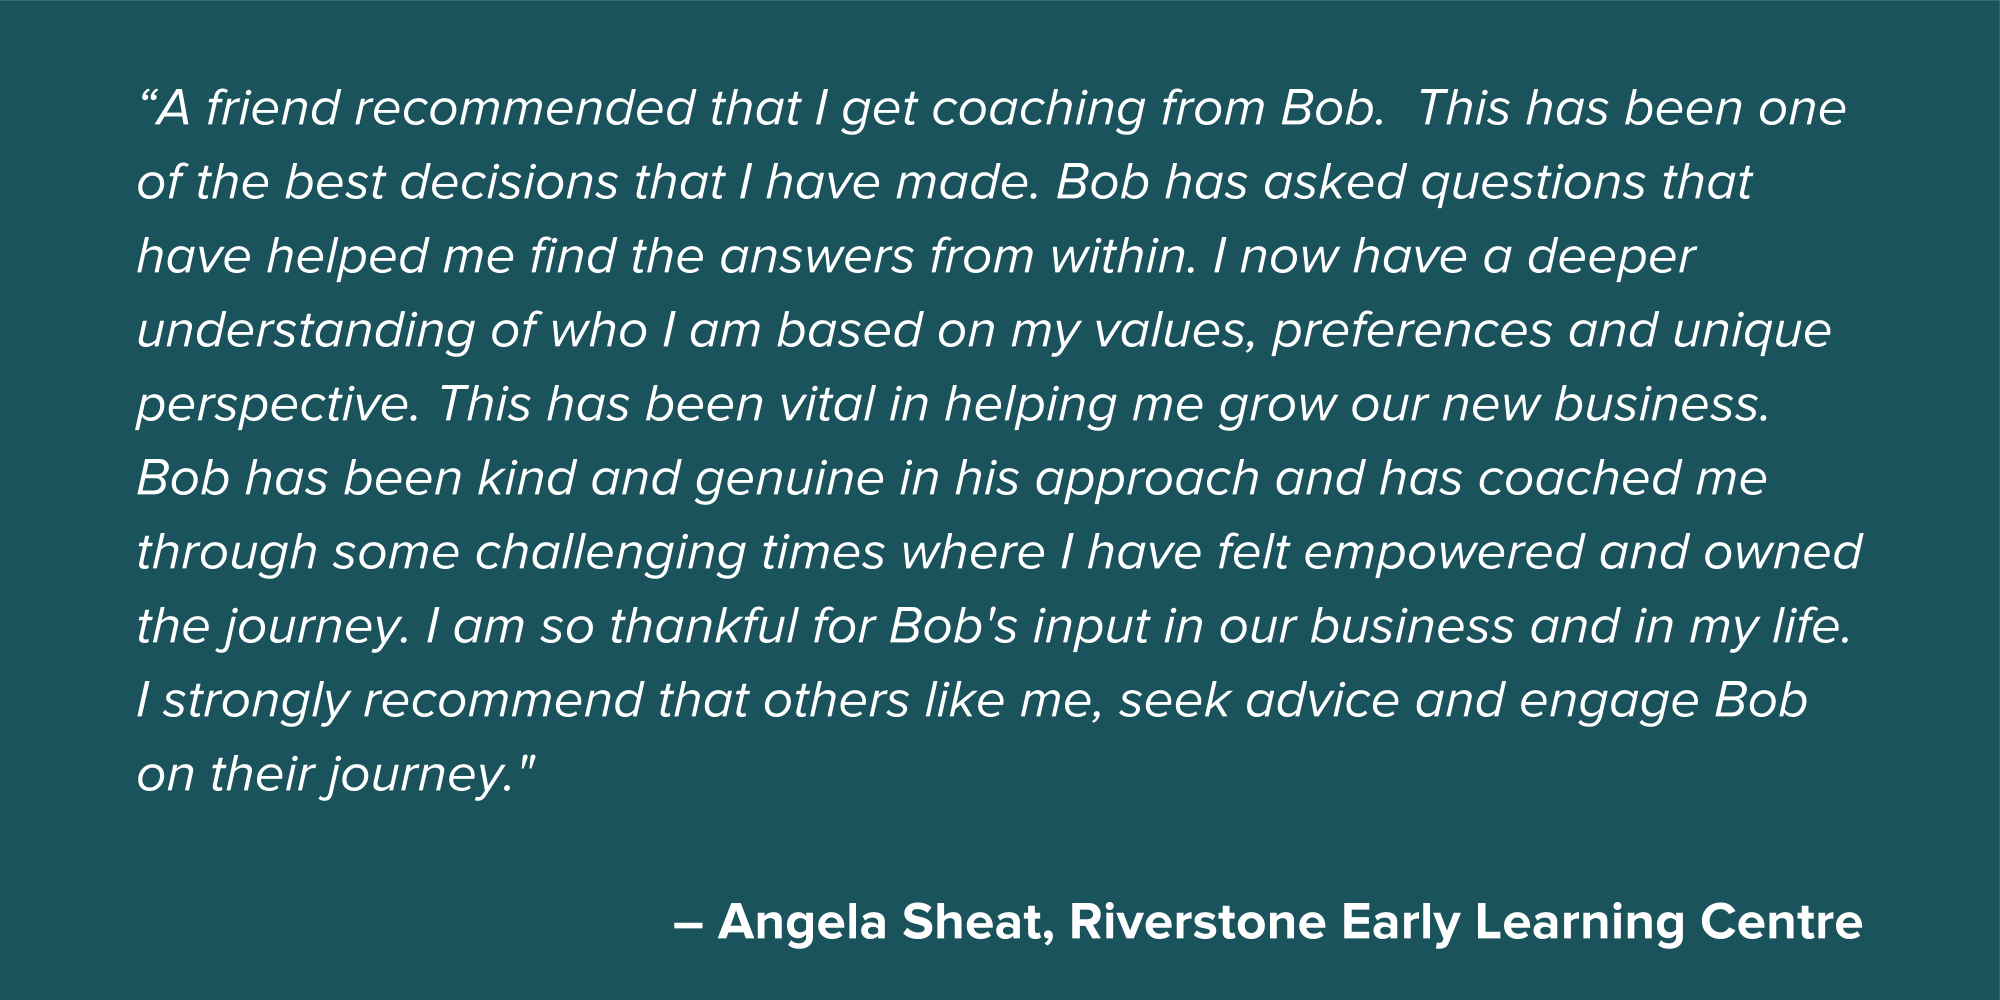 Angela Sheat Small Business Testimonial Quote